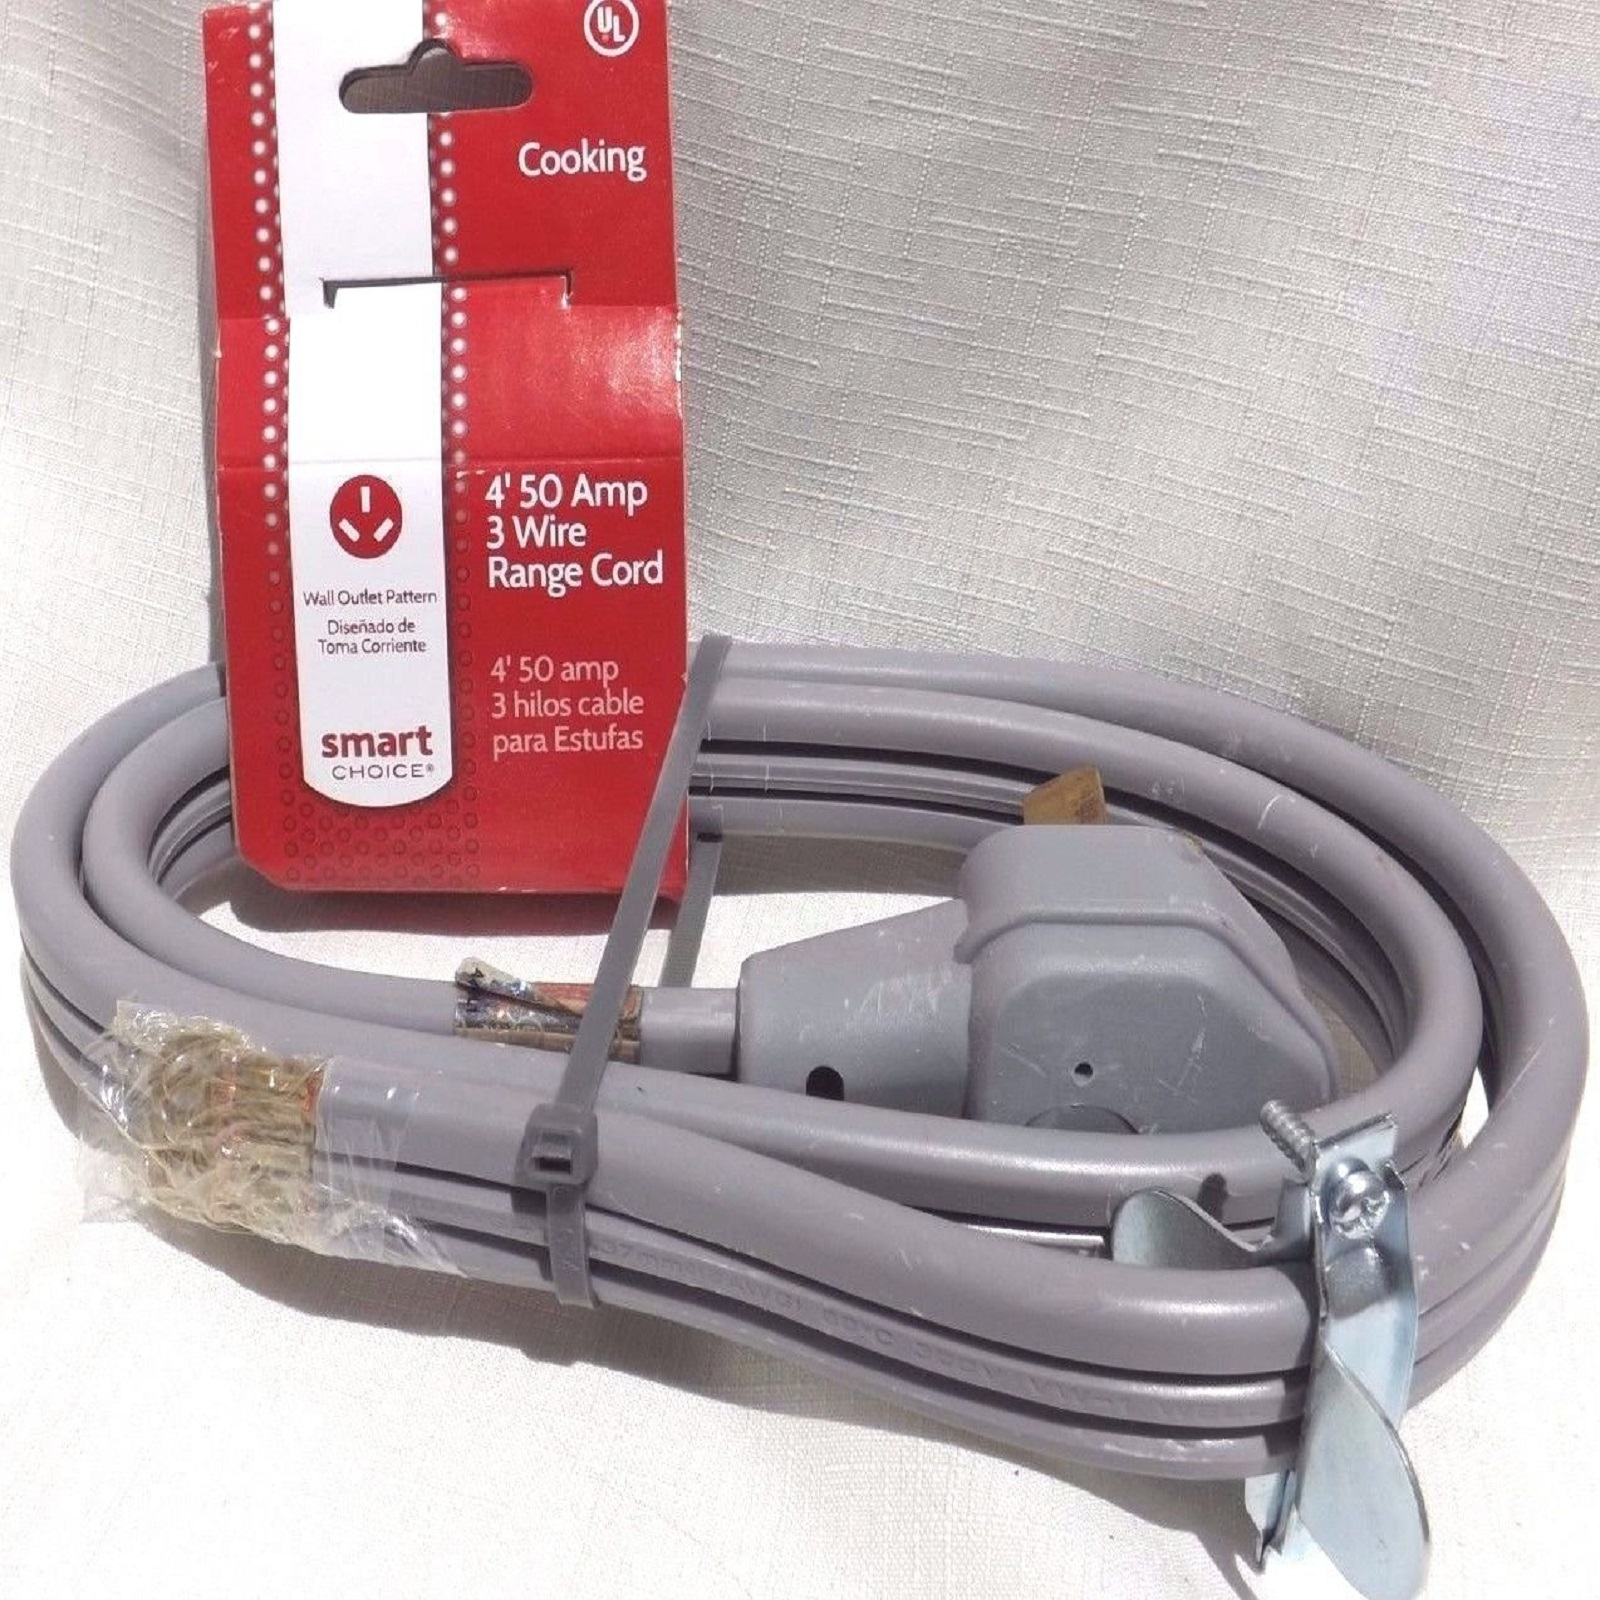 electricord 49614 3 wire 4 ft electric range cord sears outlet electricord 49624 4 wire 4 ft electric range cord sears outlet [ 1600 x 1600 Pixel ]